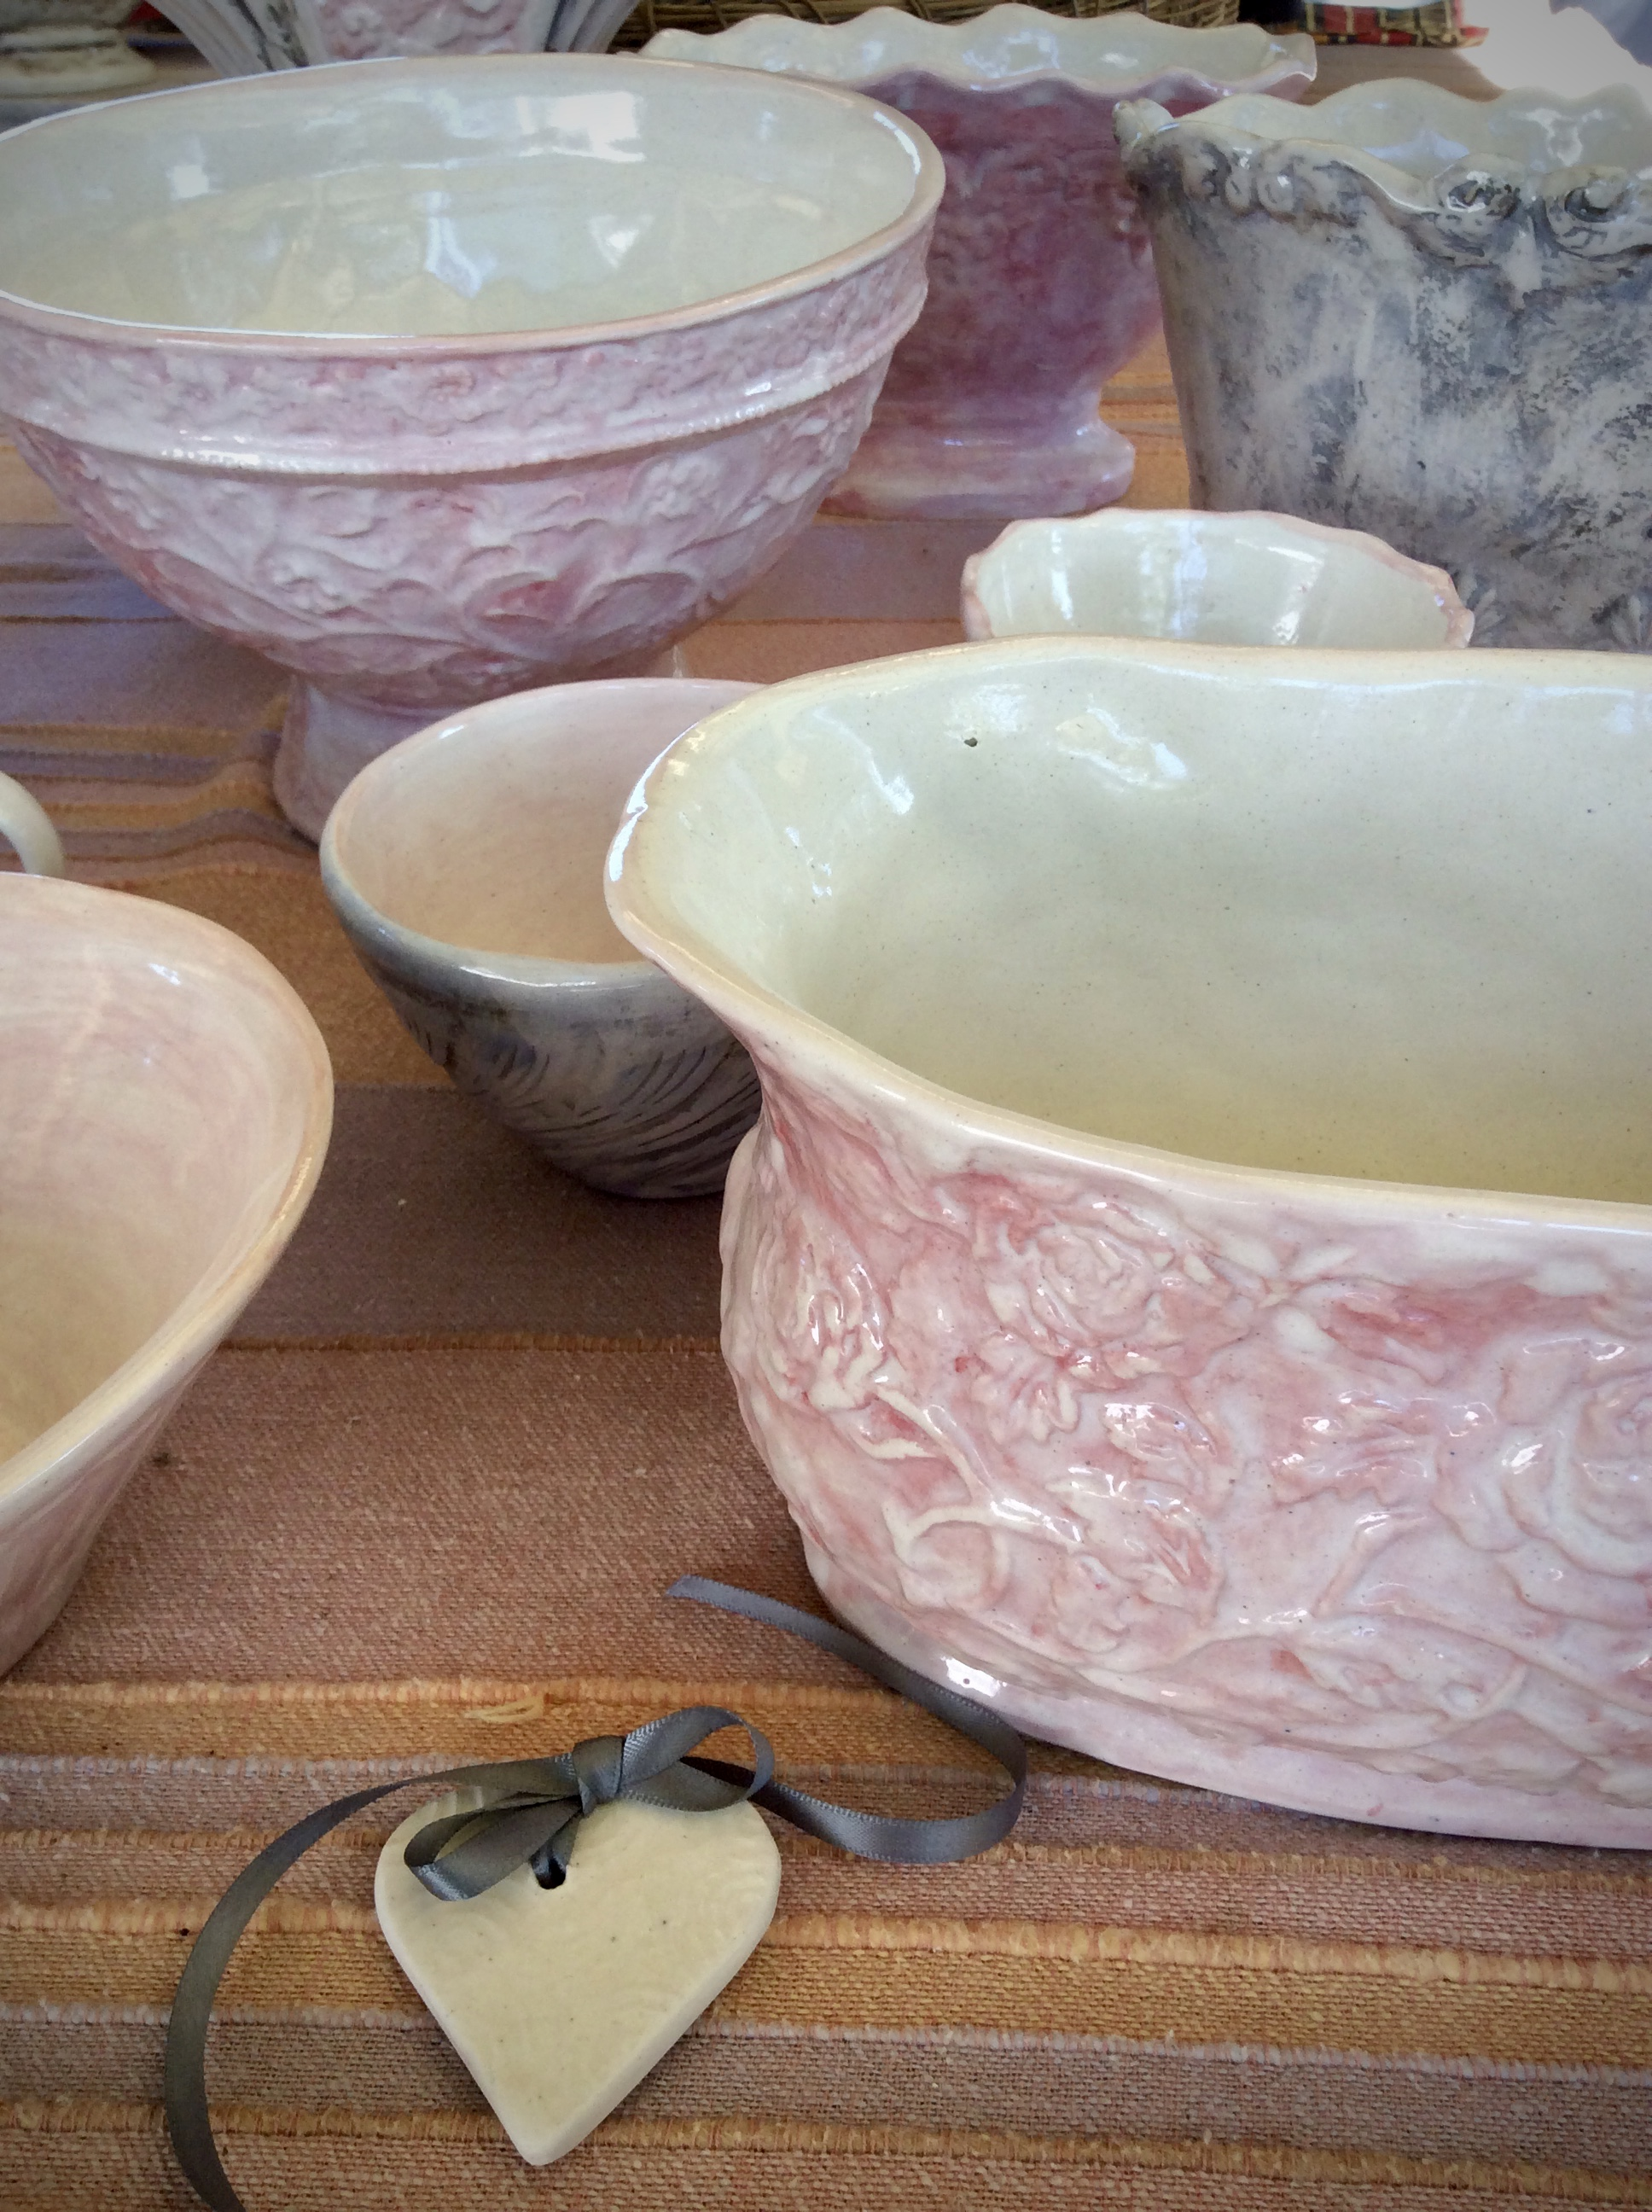 Ceramic vases and bowls from our own pottery kiln.